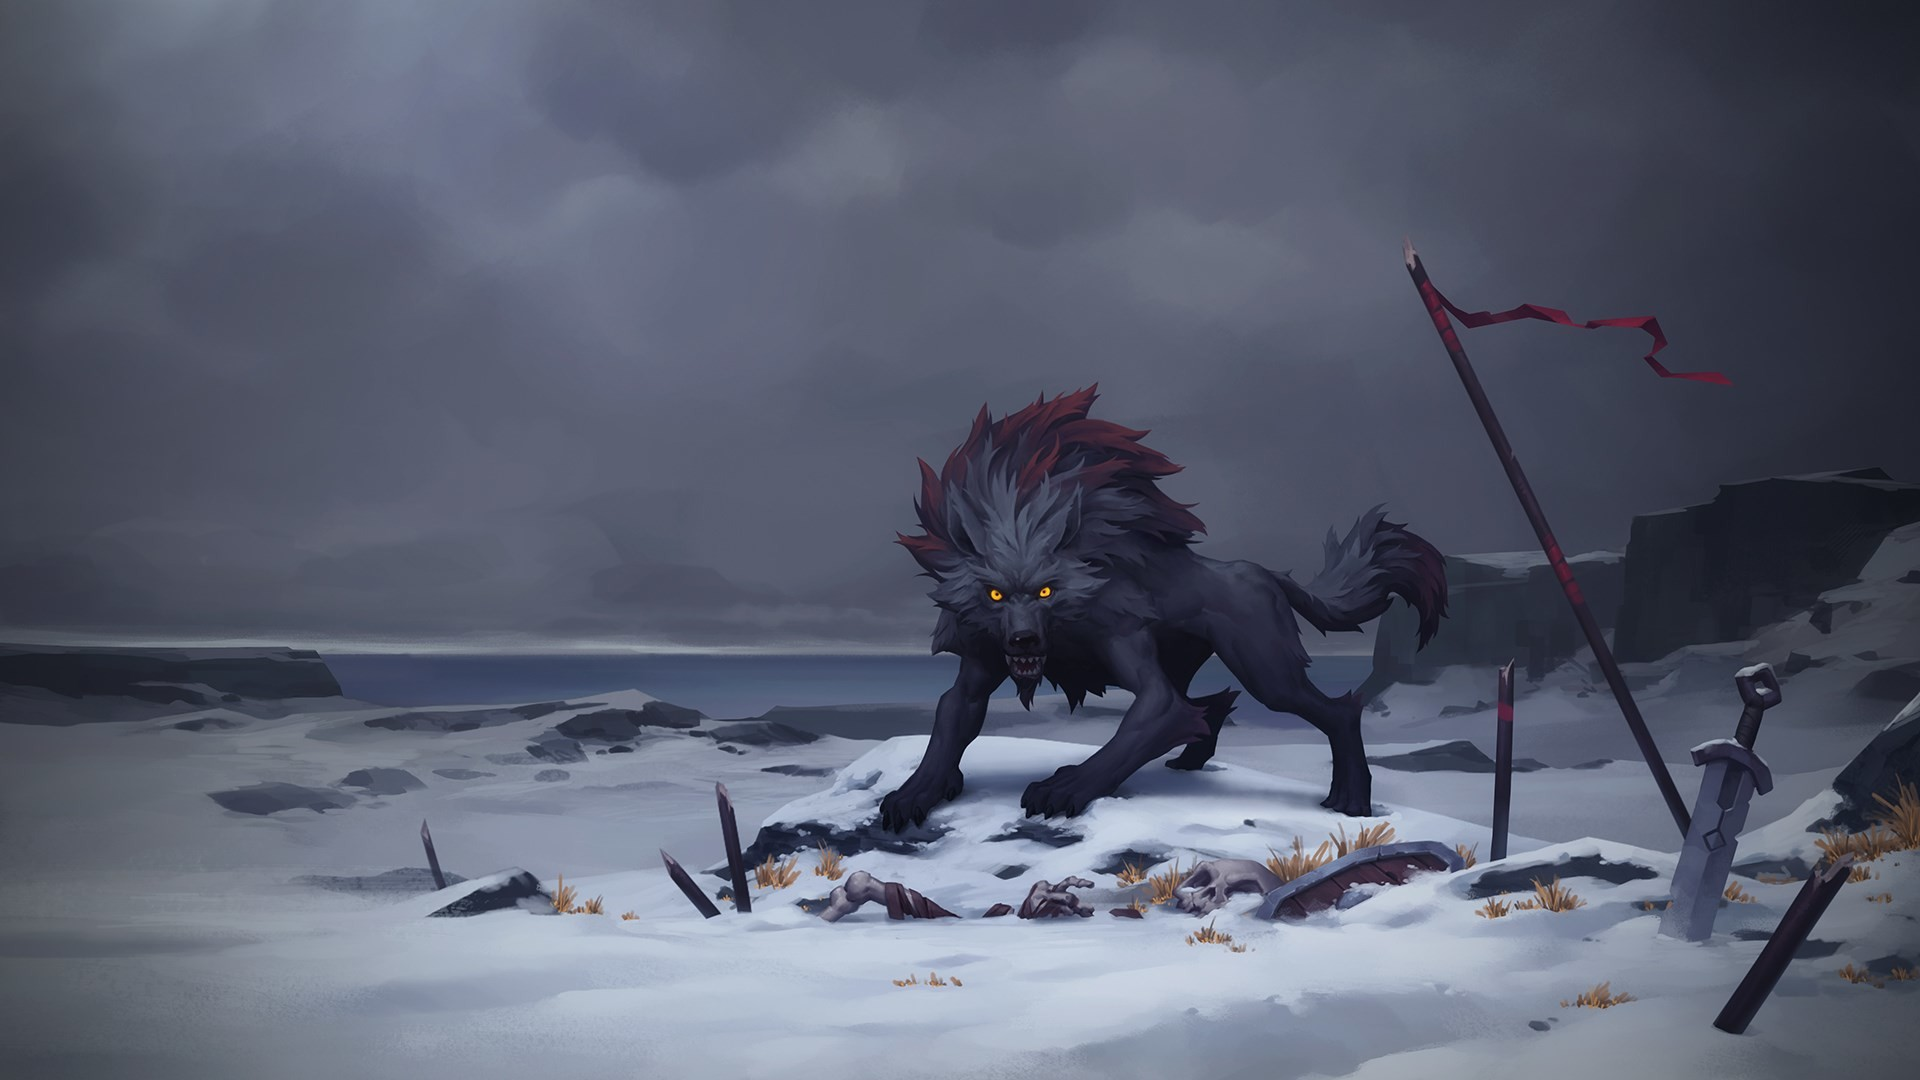 1920x1080 HD Widescreen Wallpaper - northgard